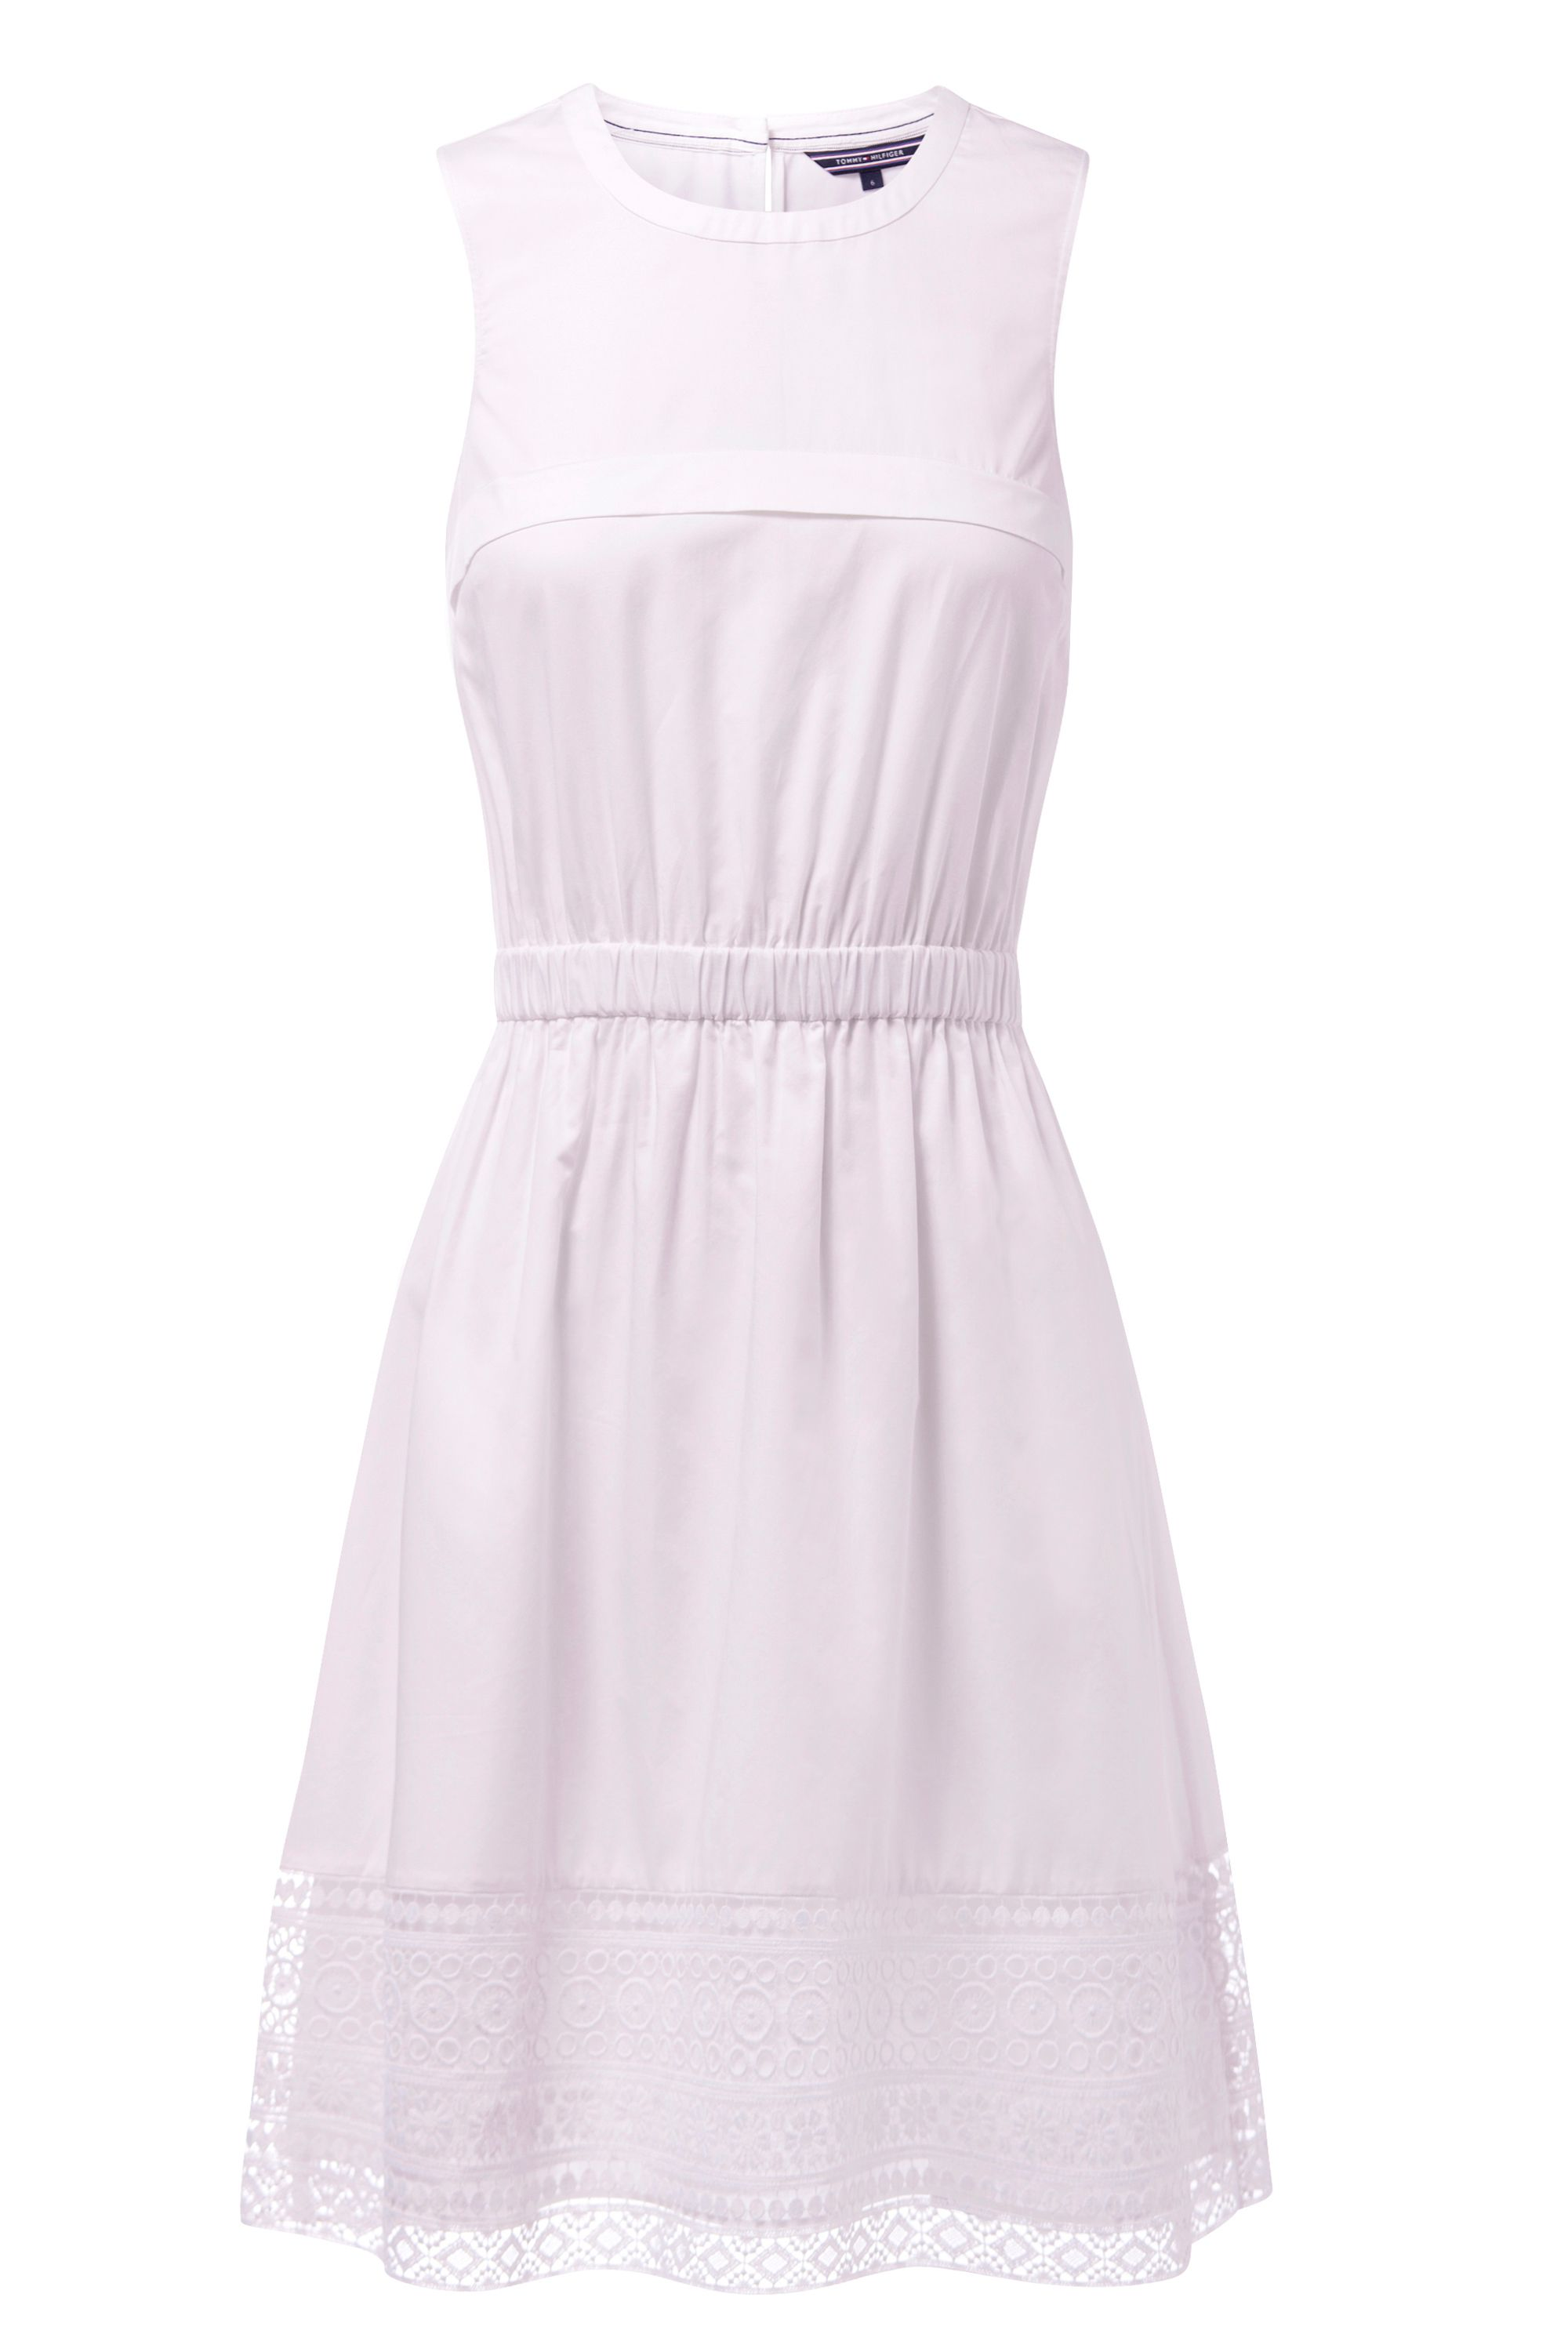 Tommy Hilfiger Aspen Dress, White